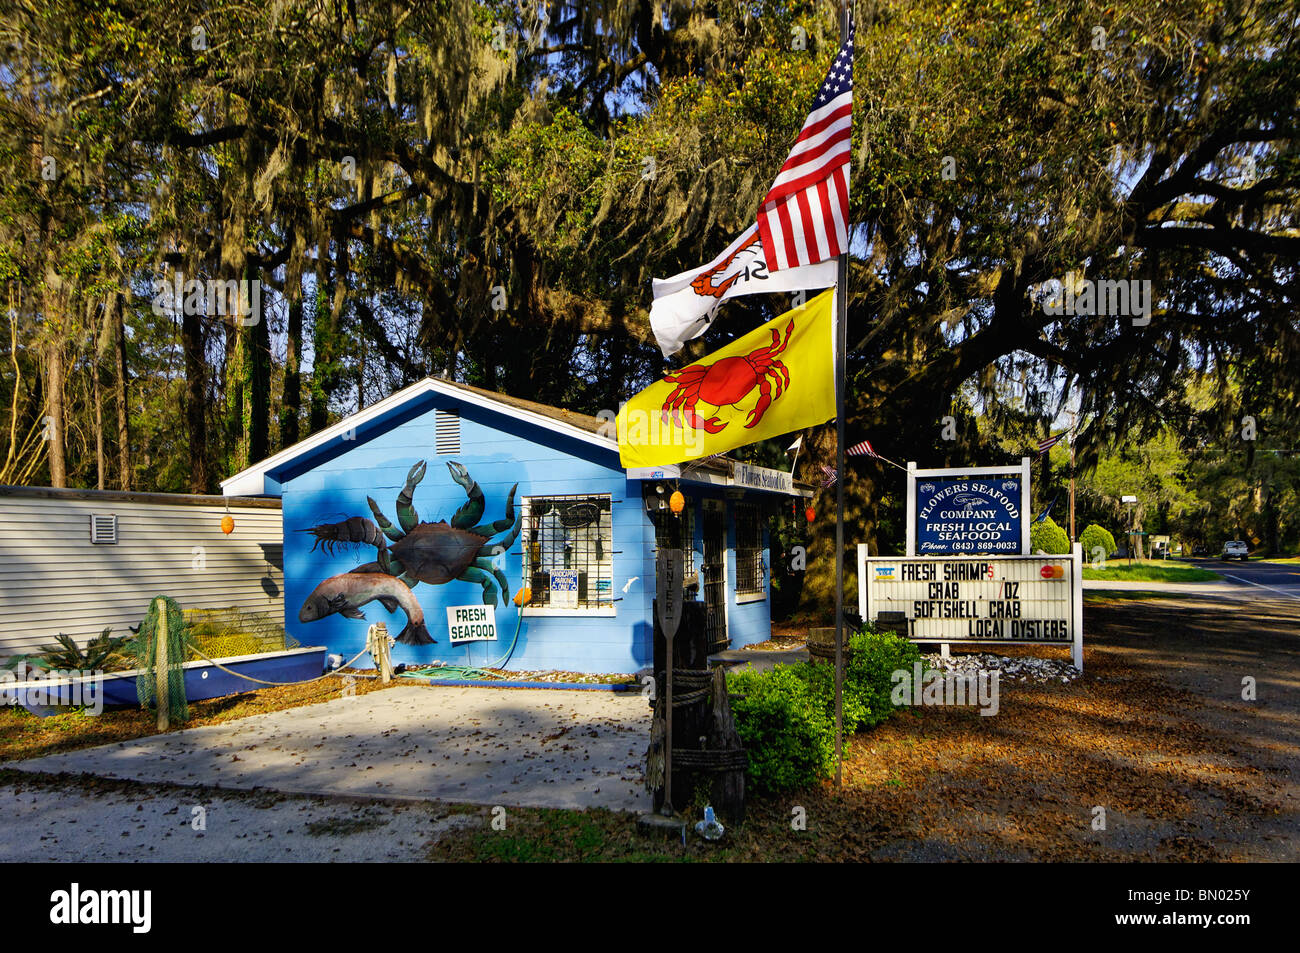 Roadside Fresh Seafood Store on Edisto Island in South Carolina - Stock Image